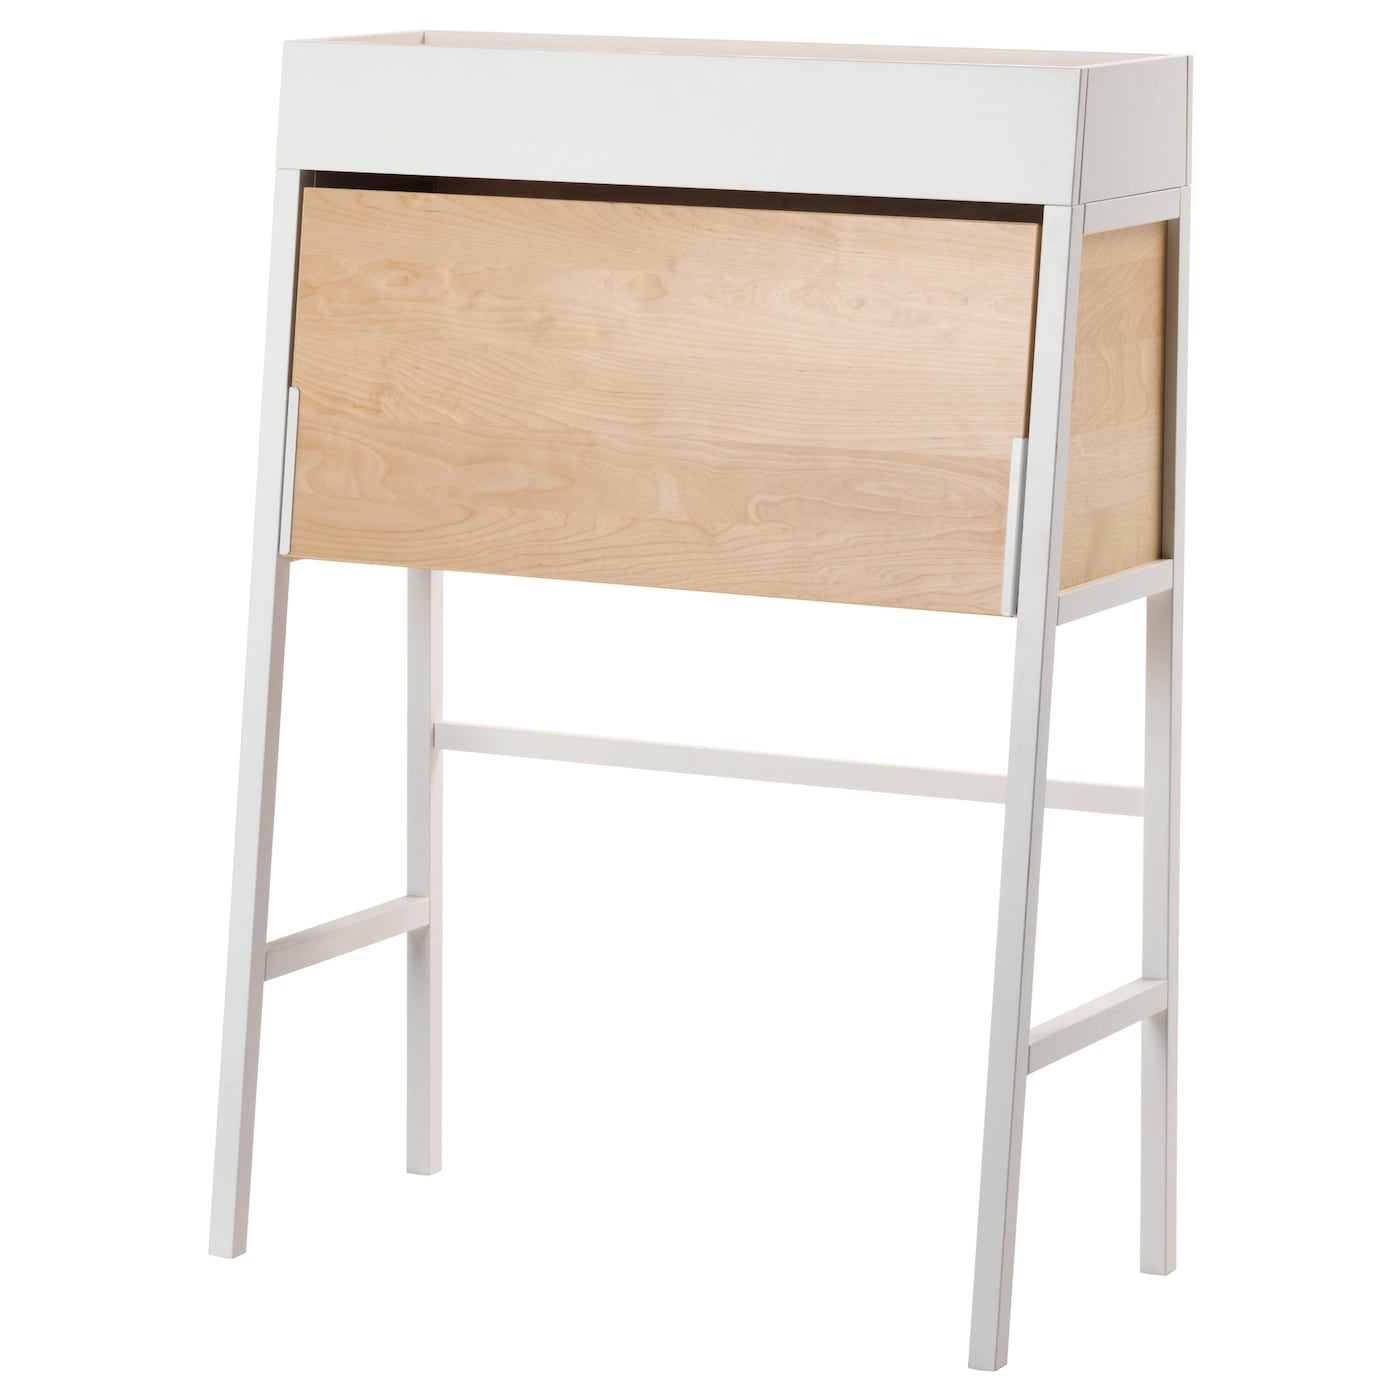 ikea ps 2014 bureau white birch veneer 90 x 127 cm ikea. Black Bedroom Furniture Sets. Home Design Ideas